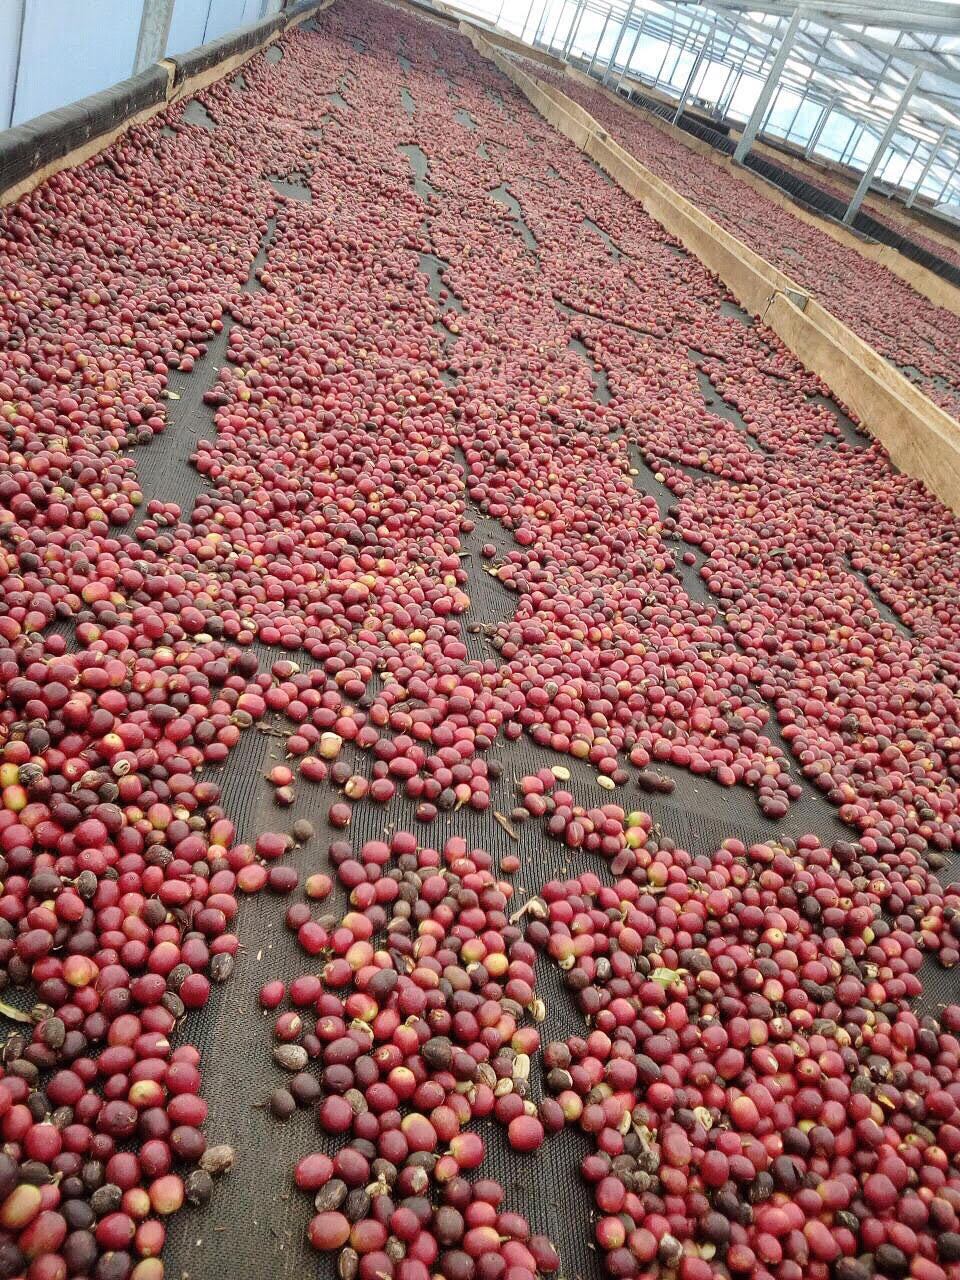 Coffee beans being processed